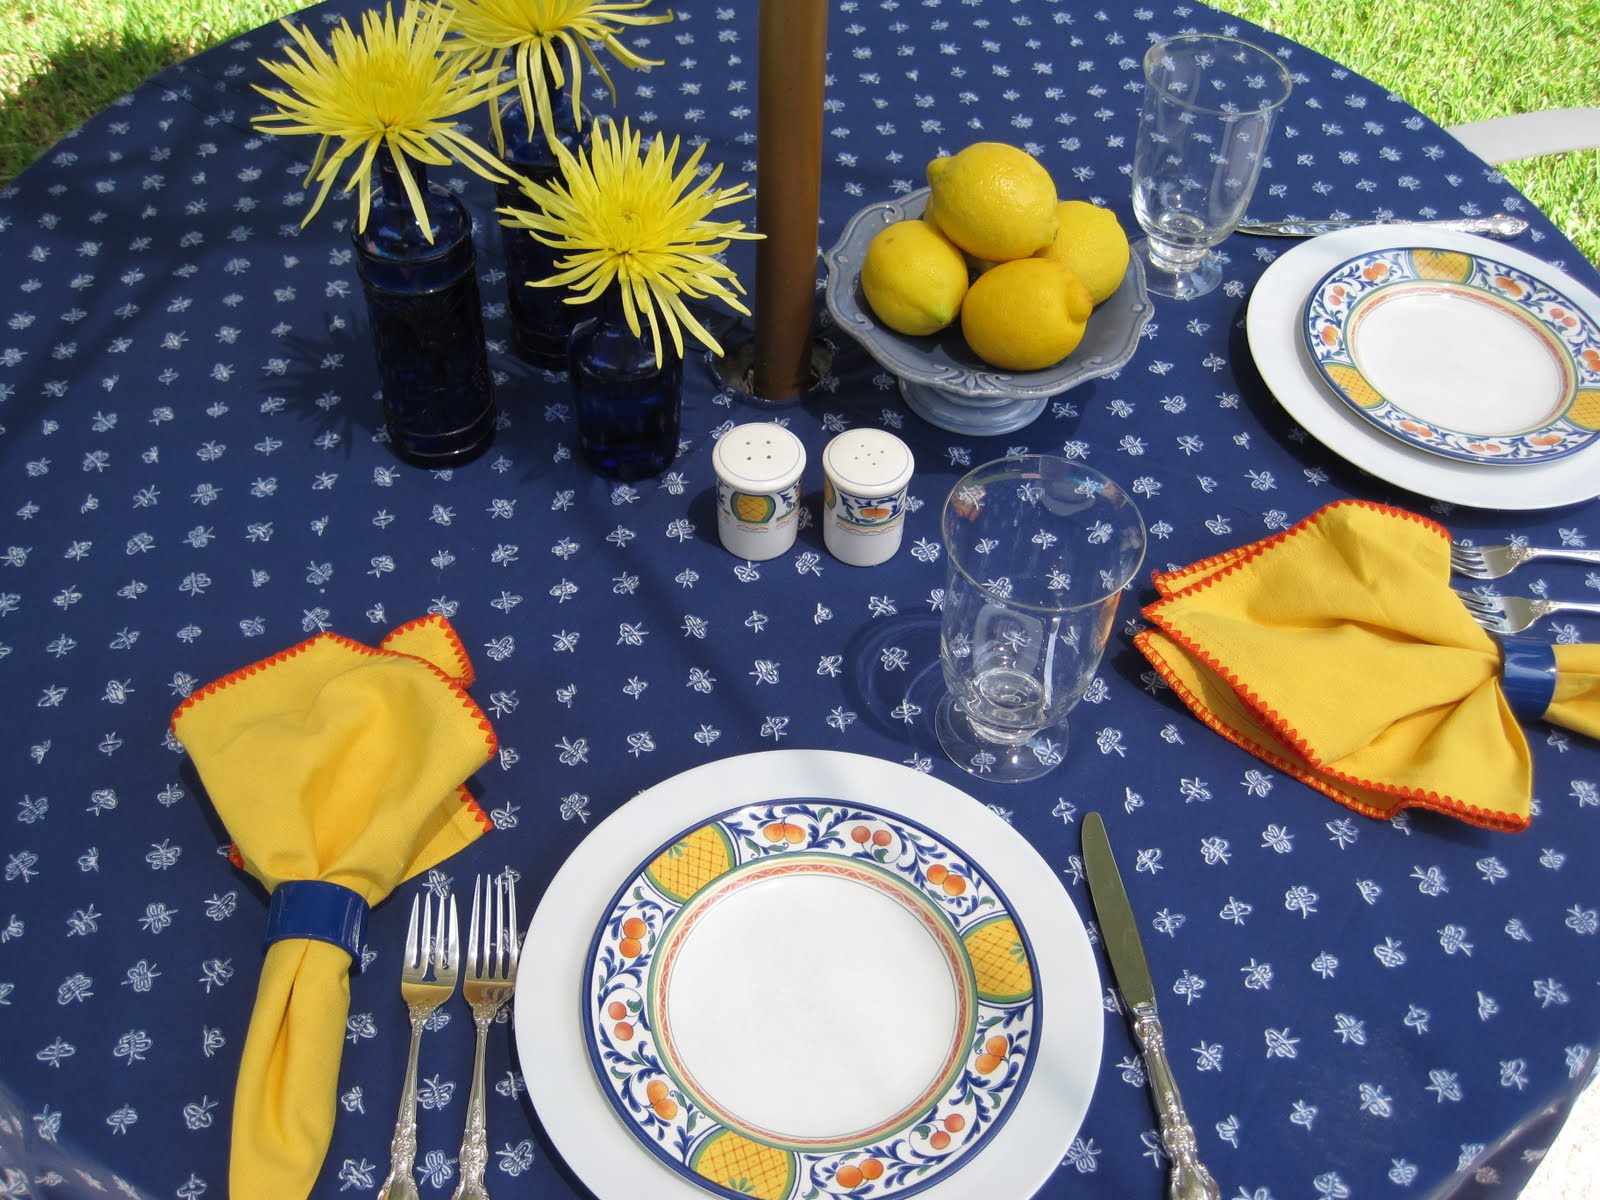 I Used The Same Tablecloth, Dinner Plates, Silver, And Glasses, But Added  Yellow Spider Mums To The Cobalt Blue Bottles And Lemons To The Blue Footed  Dish.